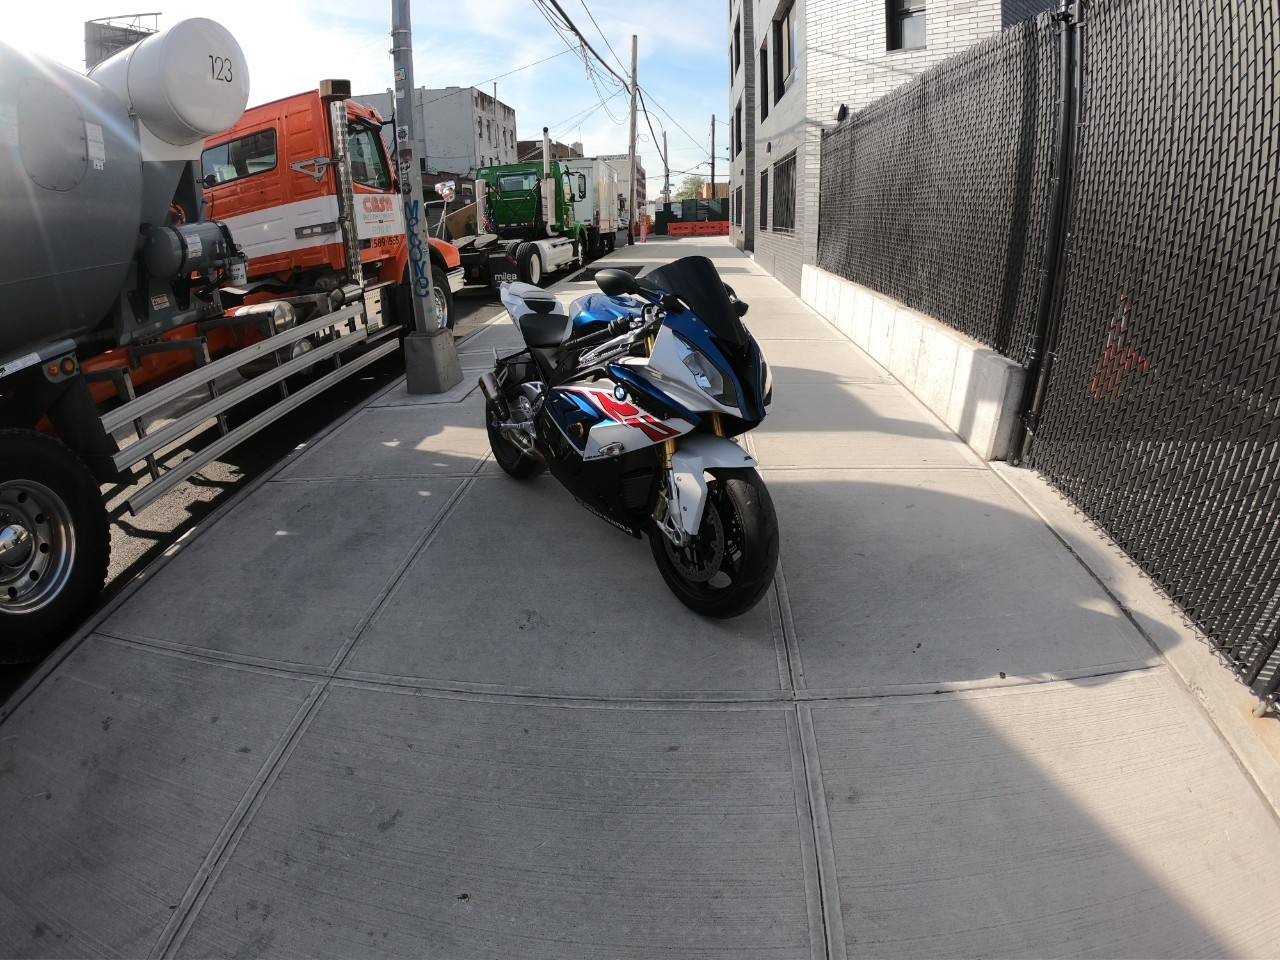 New York Used S 1000 Rr For Sale S Motorcycle528553